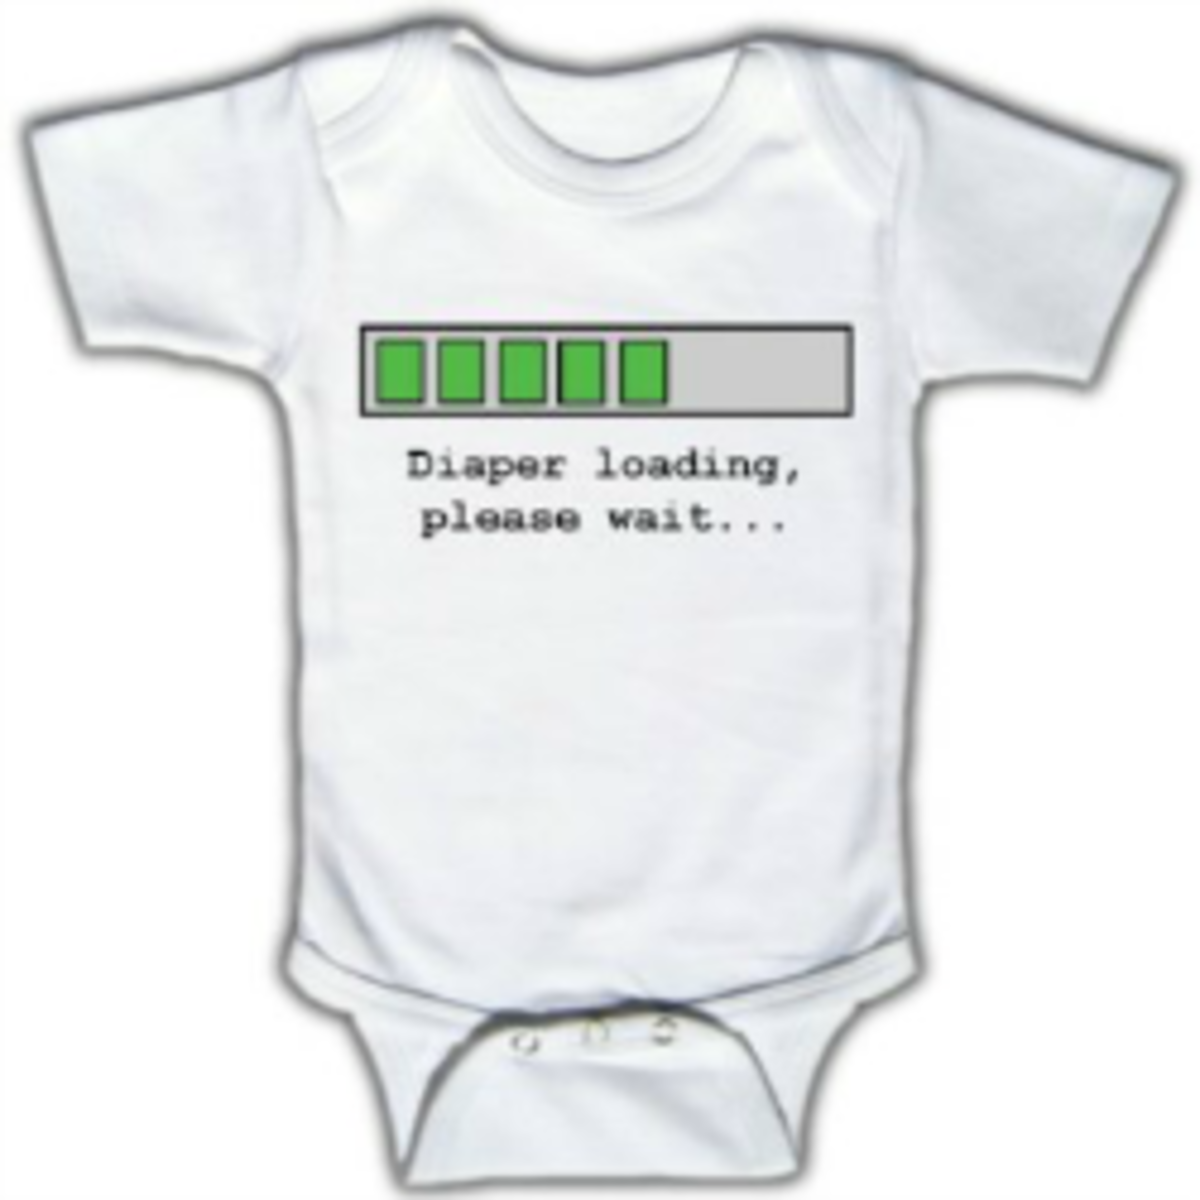 Diaper loading, please wait - Funny Baby One-piece - Available at Amazon